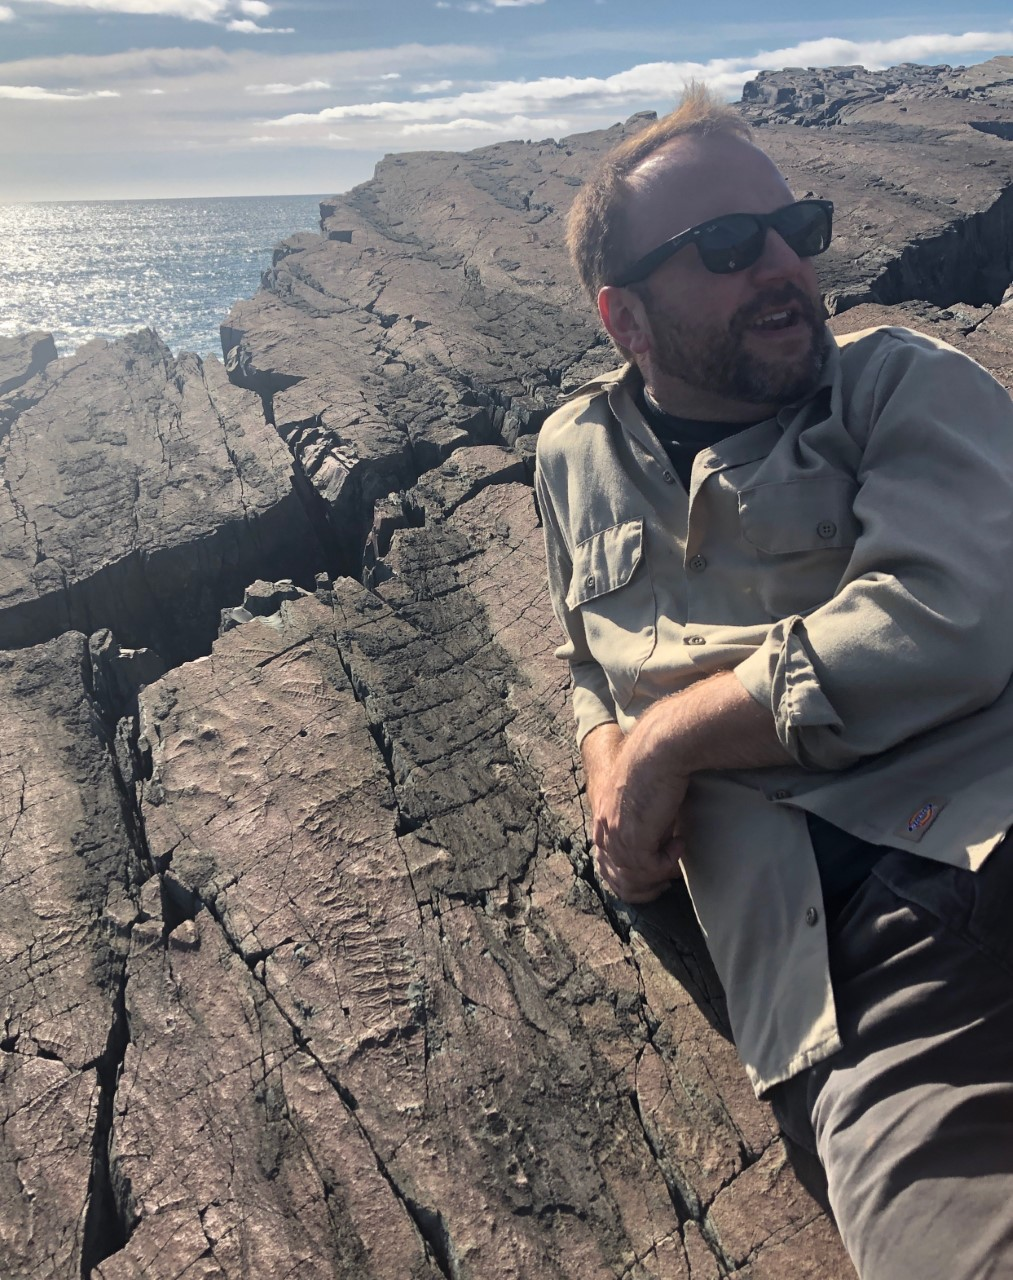 I'm relaxing on a 560 million year old cliff over the Atlantic Ocean at Mistaken Point Ecological Reserve, a UNESCO site. Next to me are fossils molds from some of the earliest known living organisms on our planet!